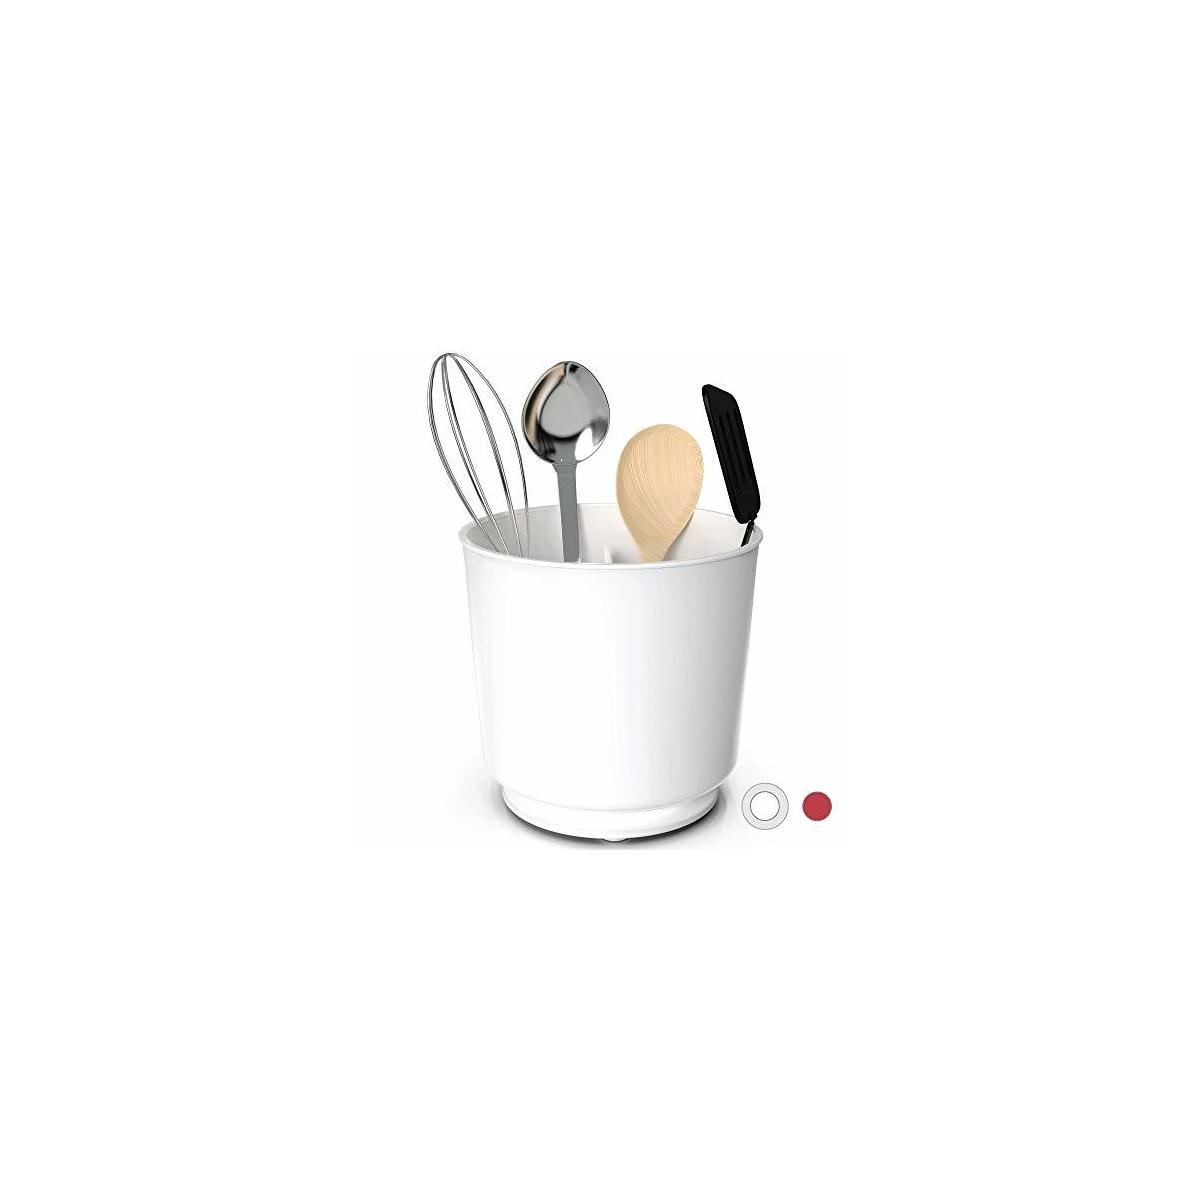 Extra Large Rotating Utensil Holder Caddy with Sturdy No-Tip Weighted Base, Removable Divider, And Gripped Insert | Rust Proof and Dishwasher Safe by Cooler Kitchen